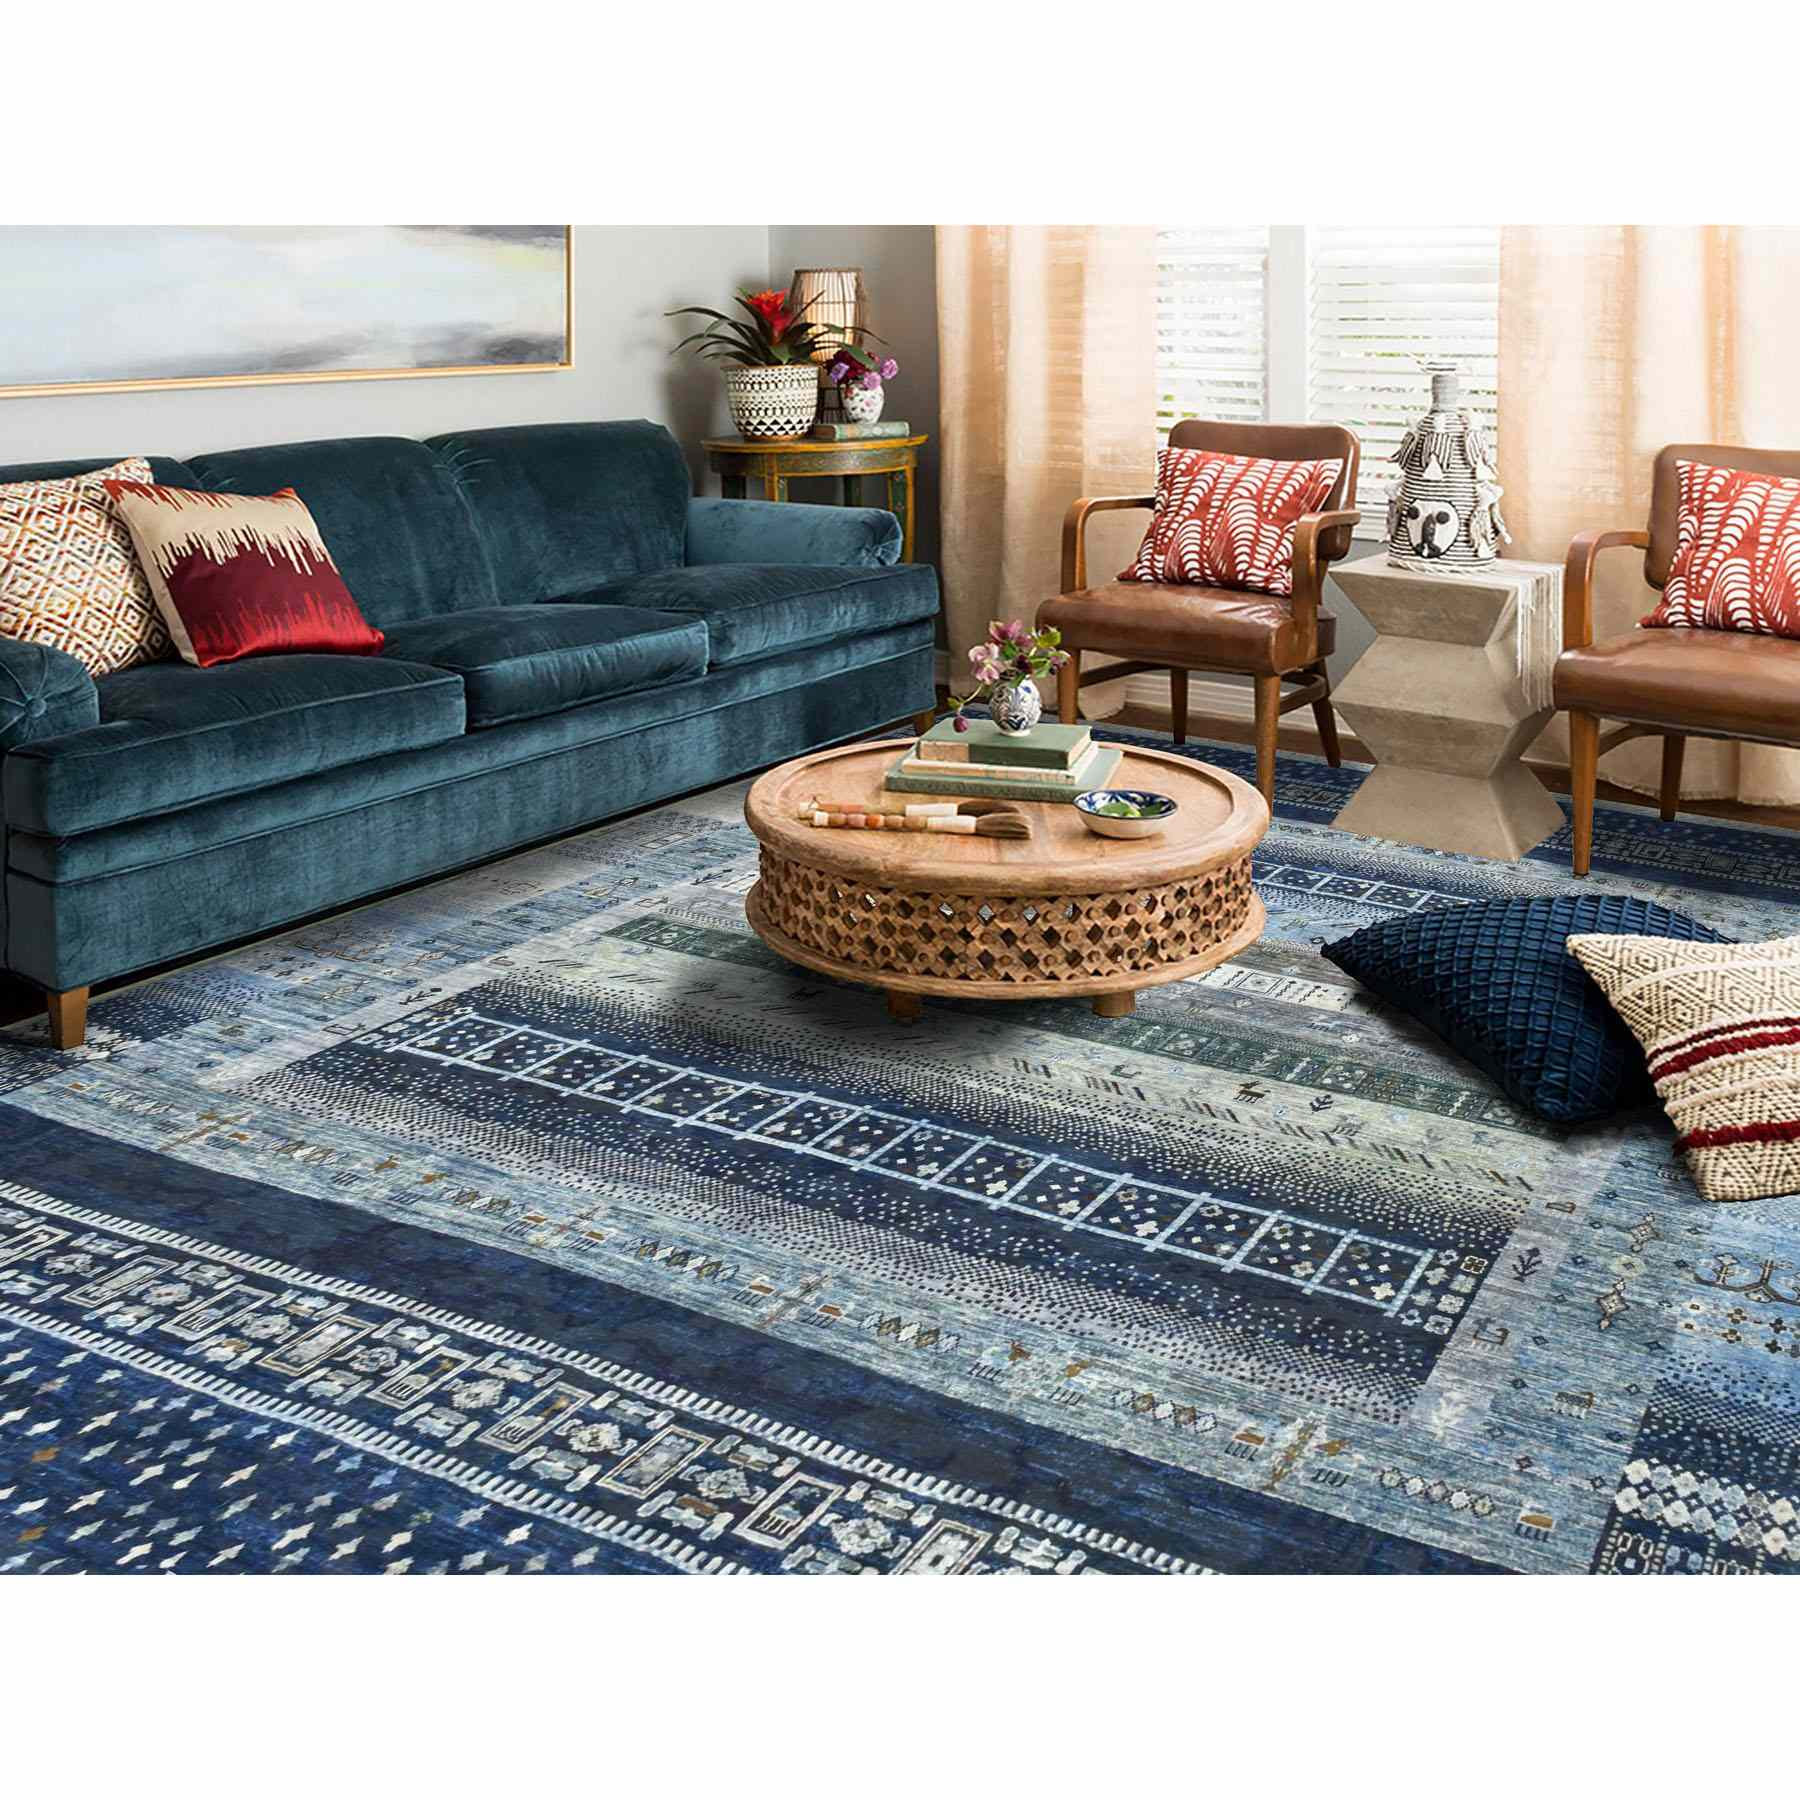 Tribal-Geometric-Hand-Knotted-Rug-256025